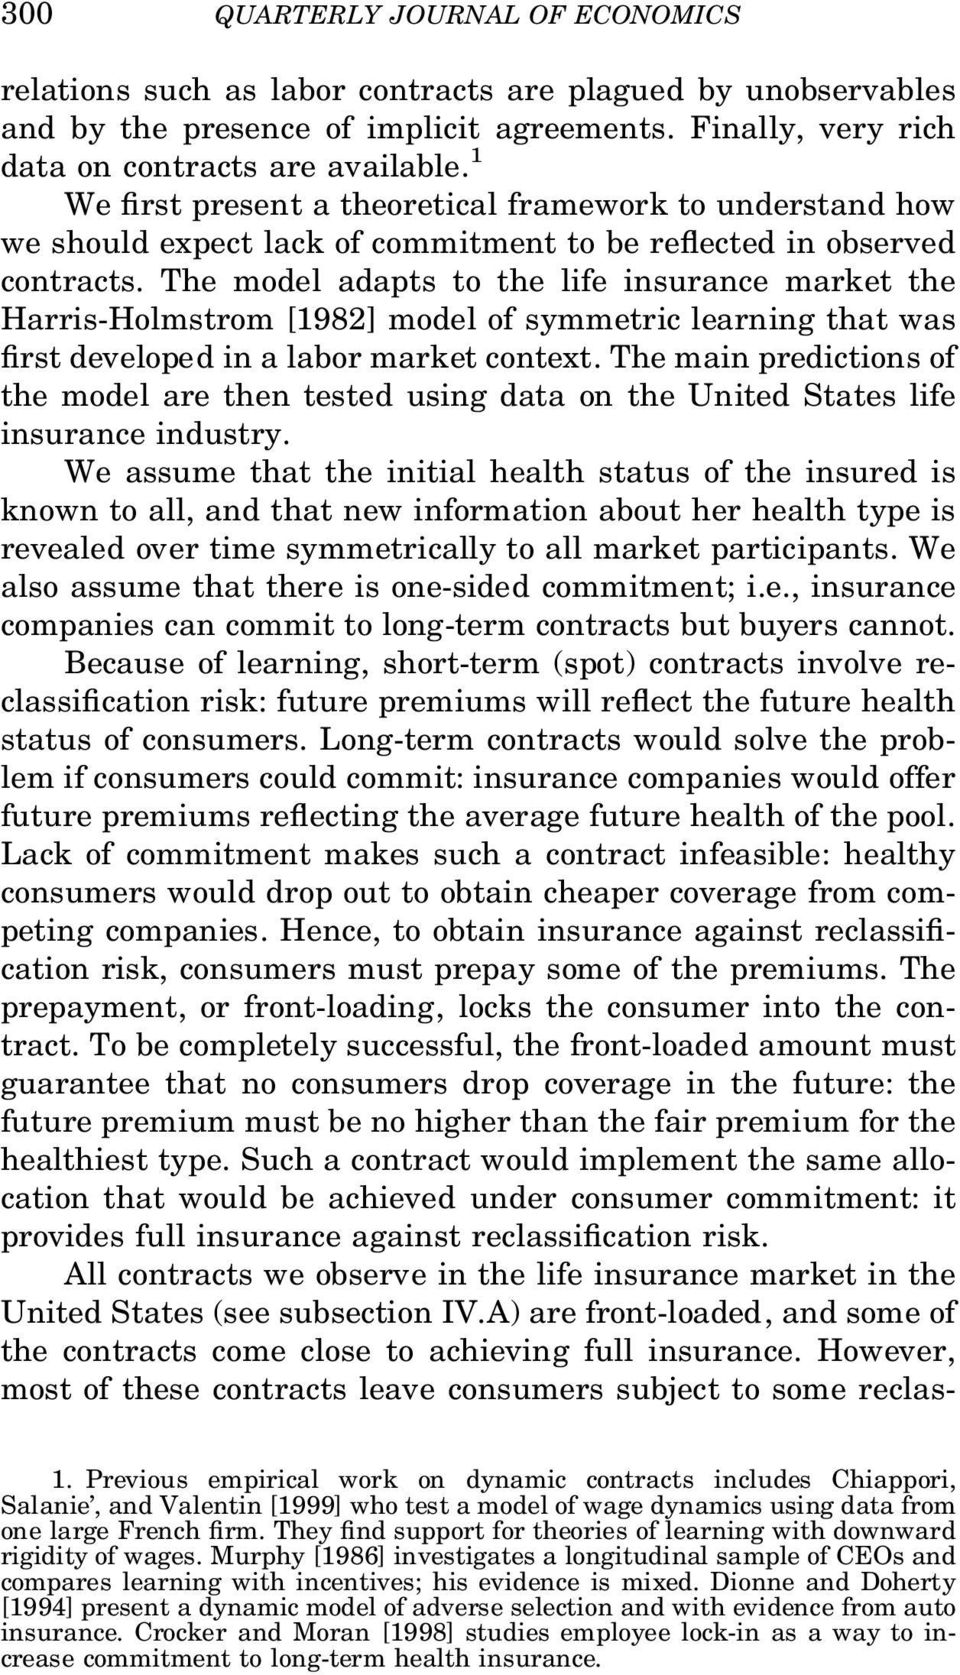 The model adapts to the lfe nsurance market the Harrs-Holmstrom [1982] model of symmetrc learnng that was rst developed n a labor market context.